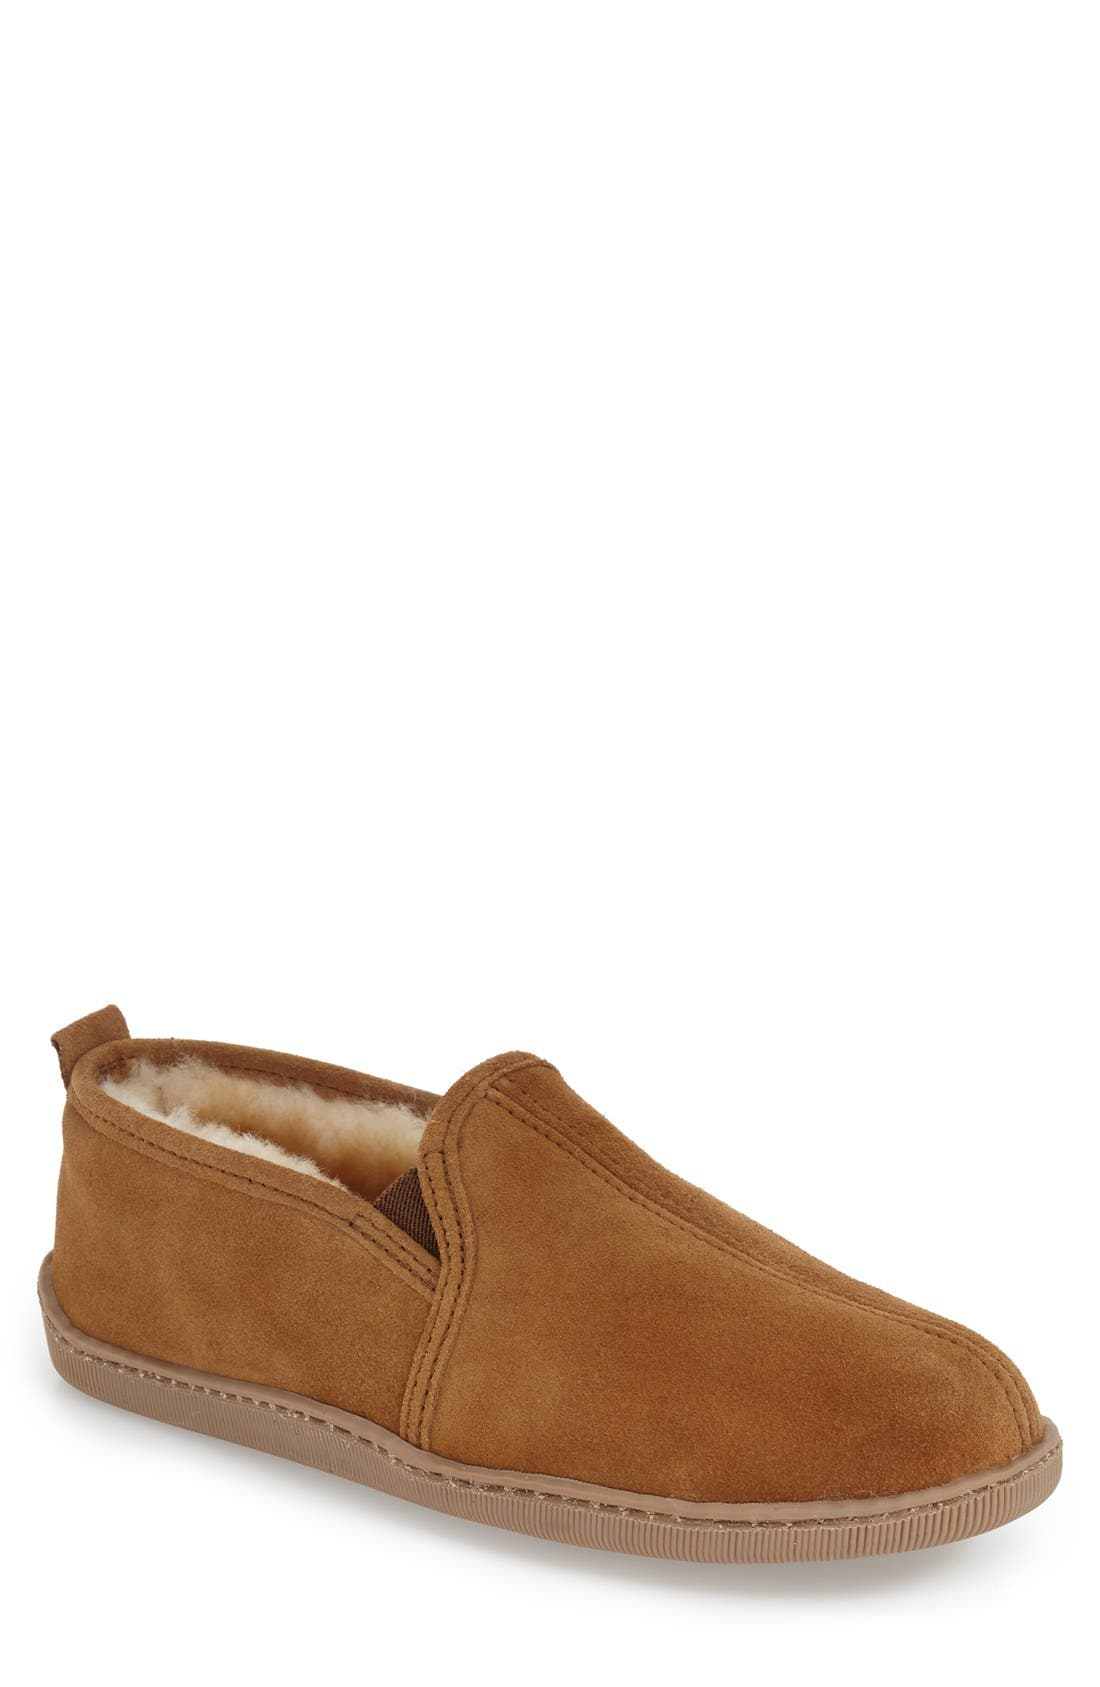 MINNETONKA Genuine Shearling Lined Slipper